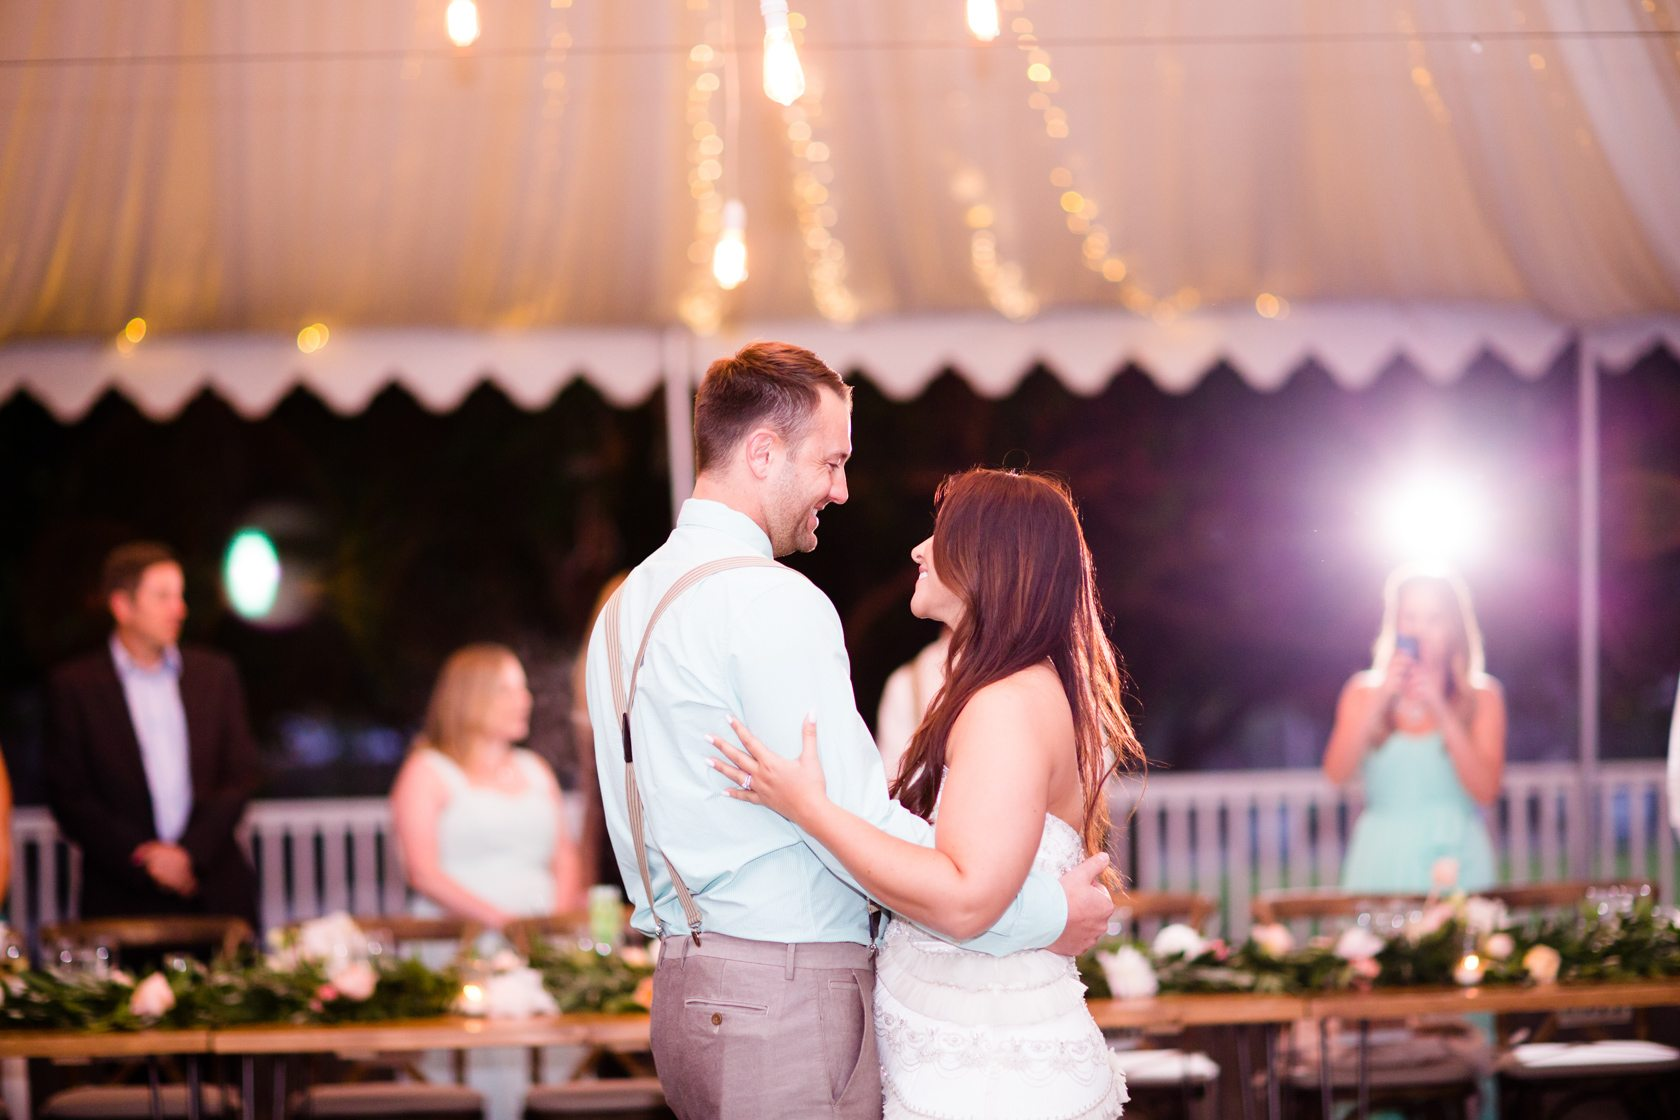 The_Printed_Palette_Wedding_at_Calamigos_Ranch_111.jpg